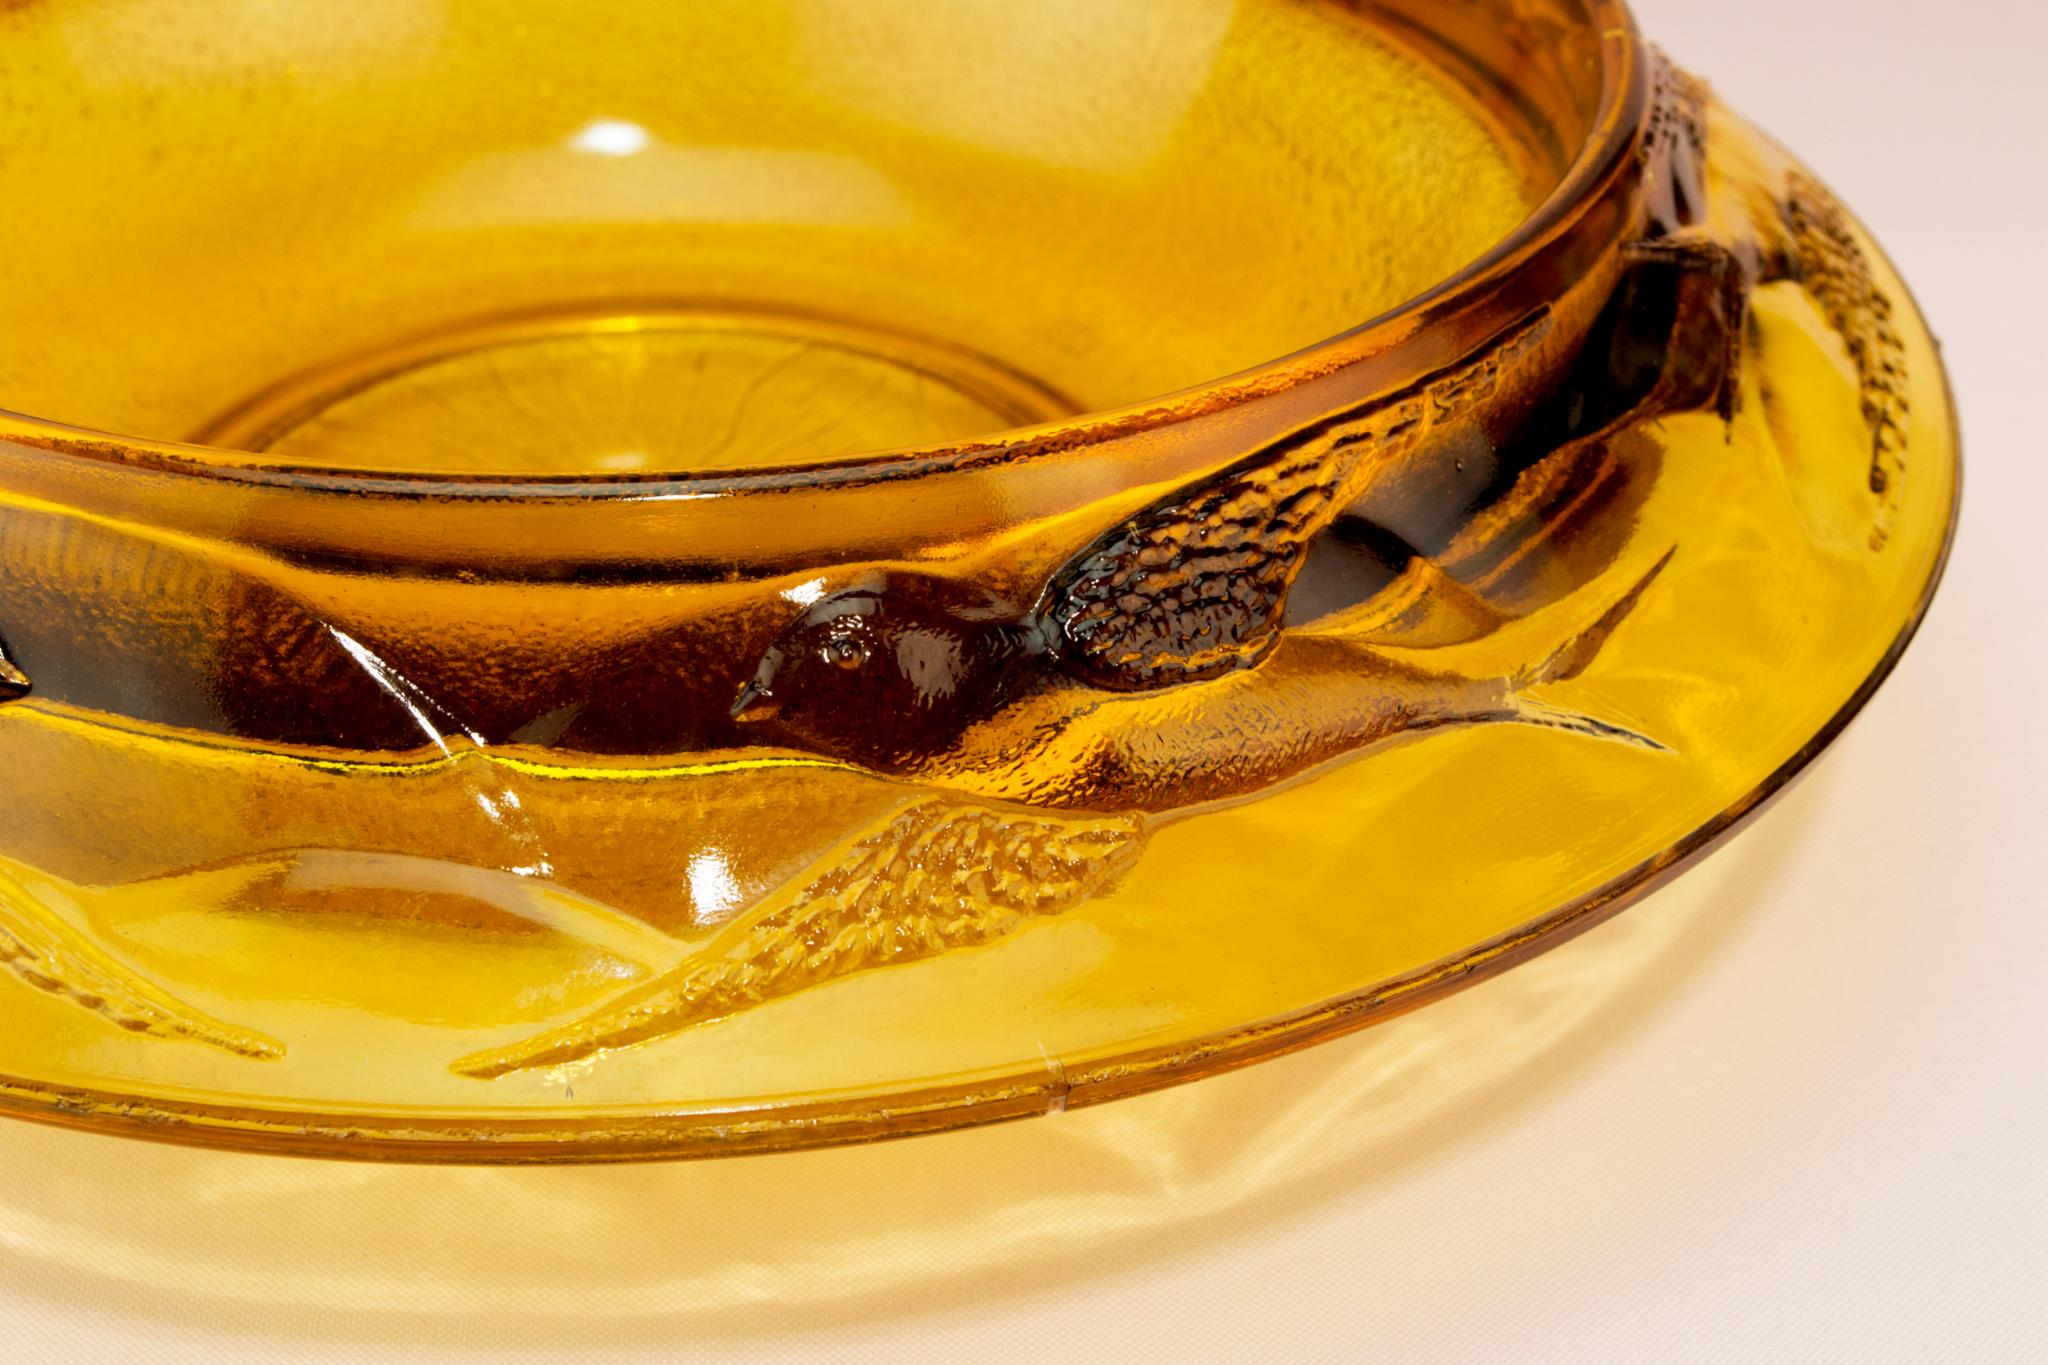 Art Deco Amber glass serving bowl, English 1930s